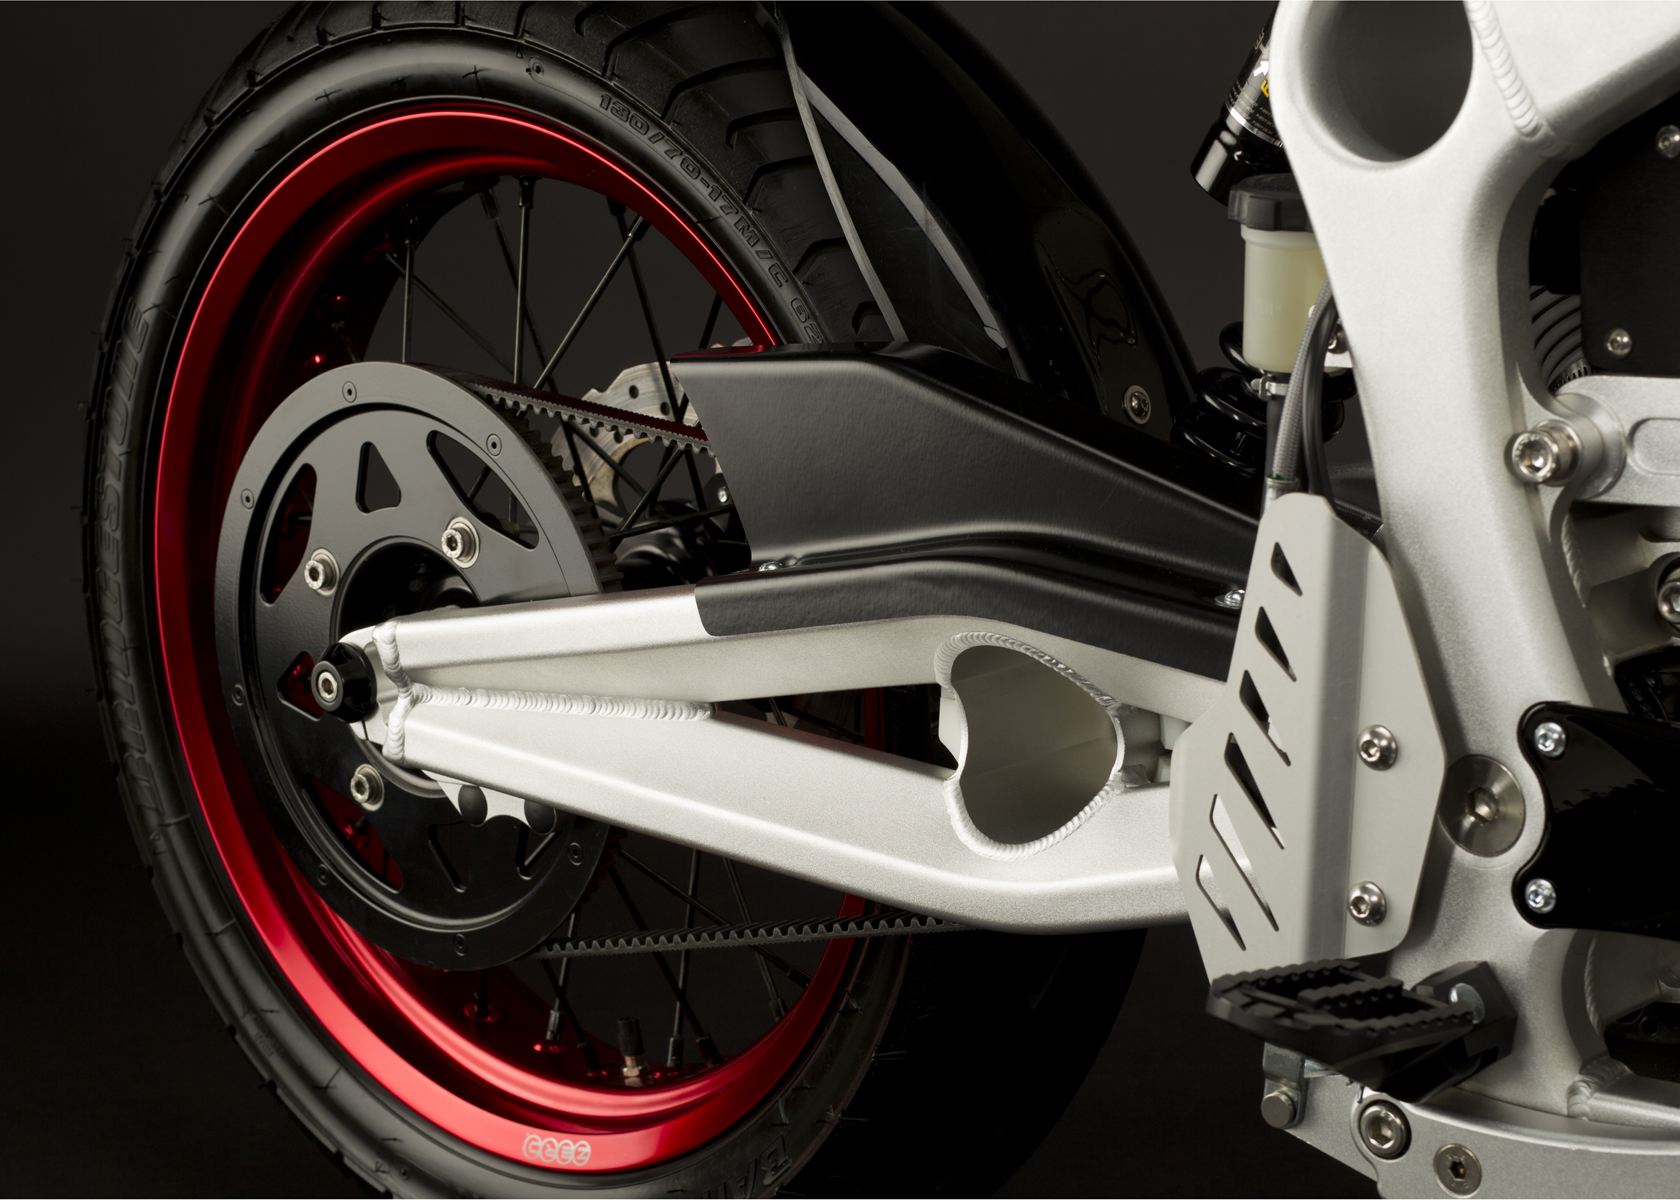 2011 Zero S Electric Motorcycle: Swing Arm